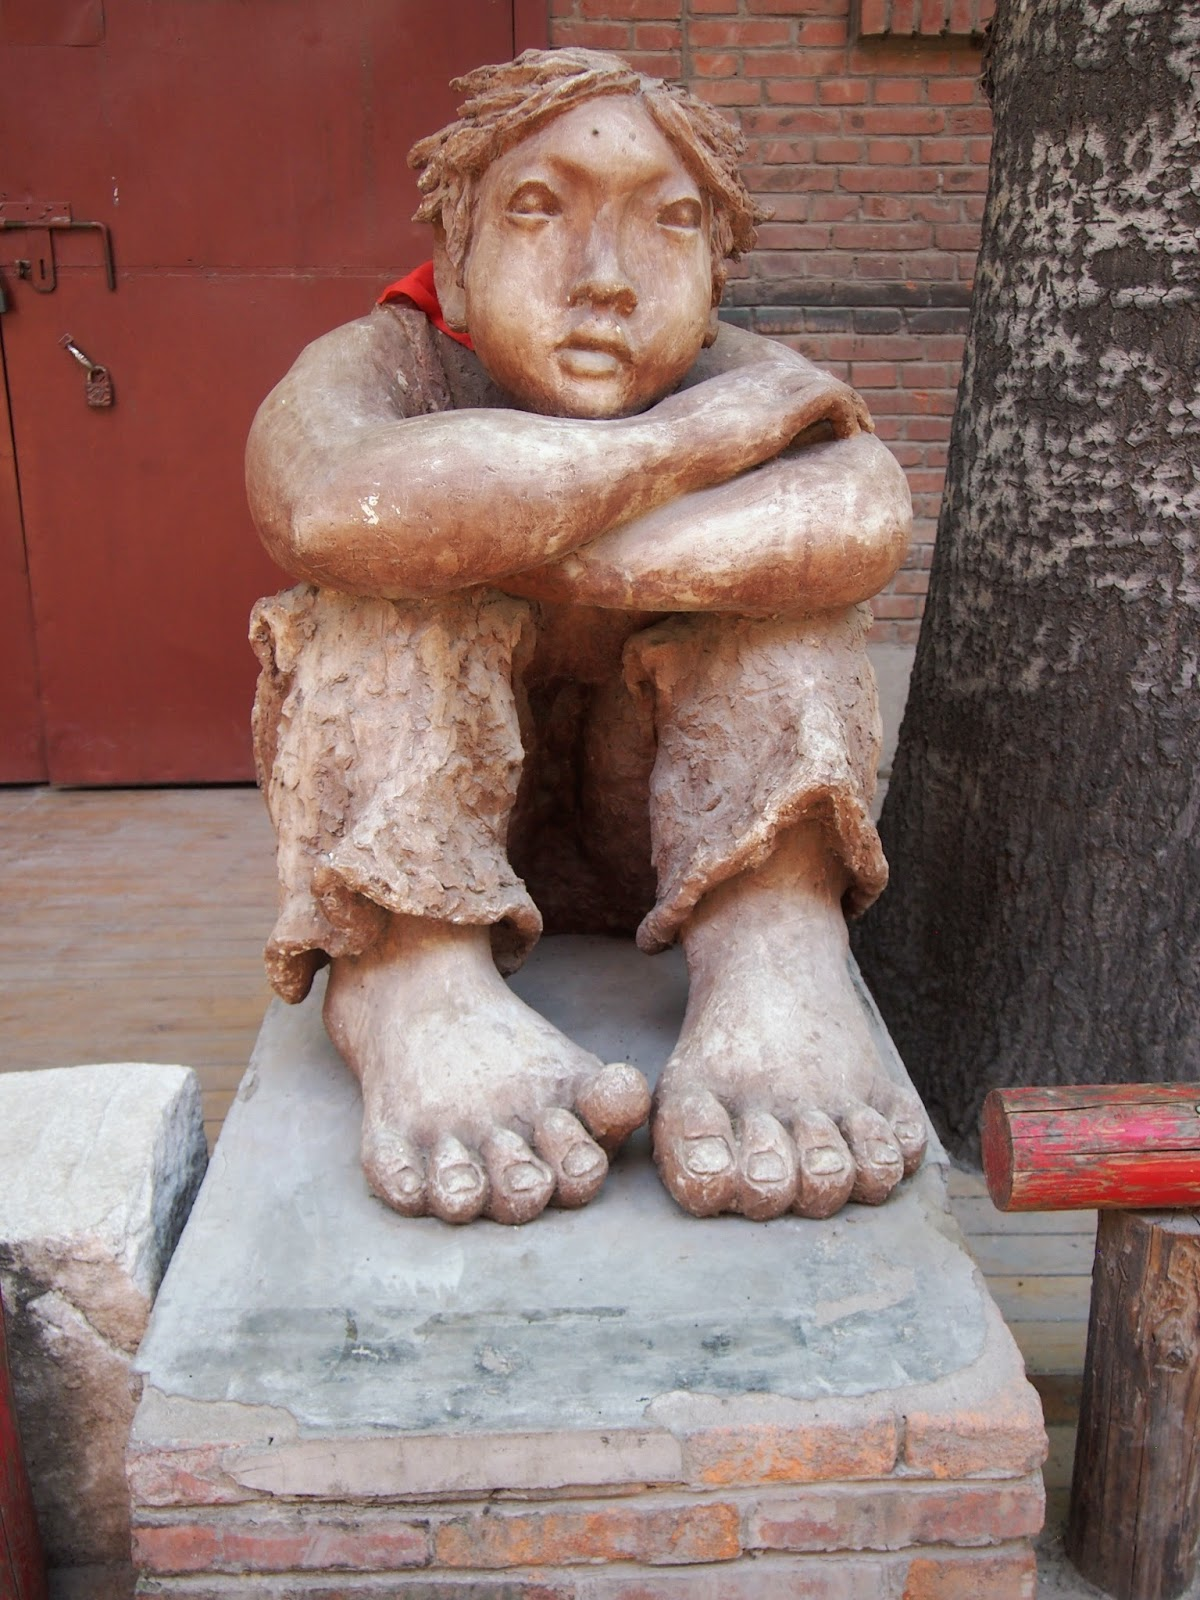 a statue of a kid sitting